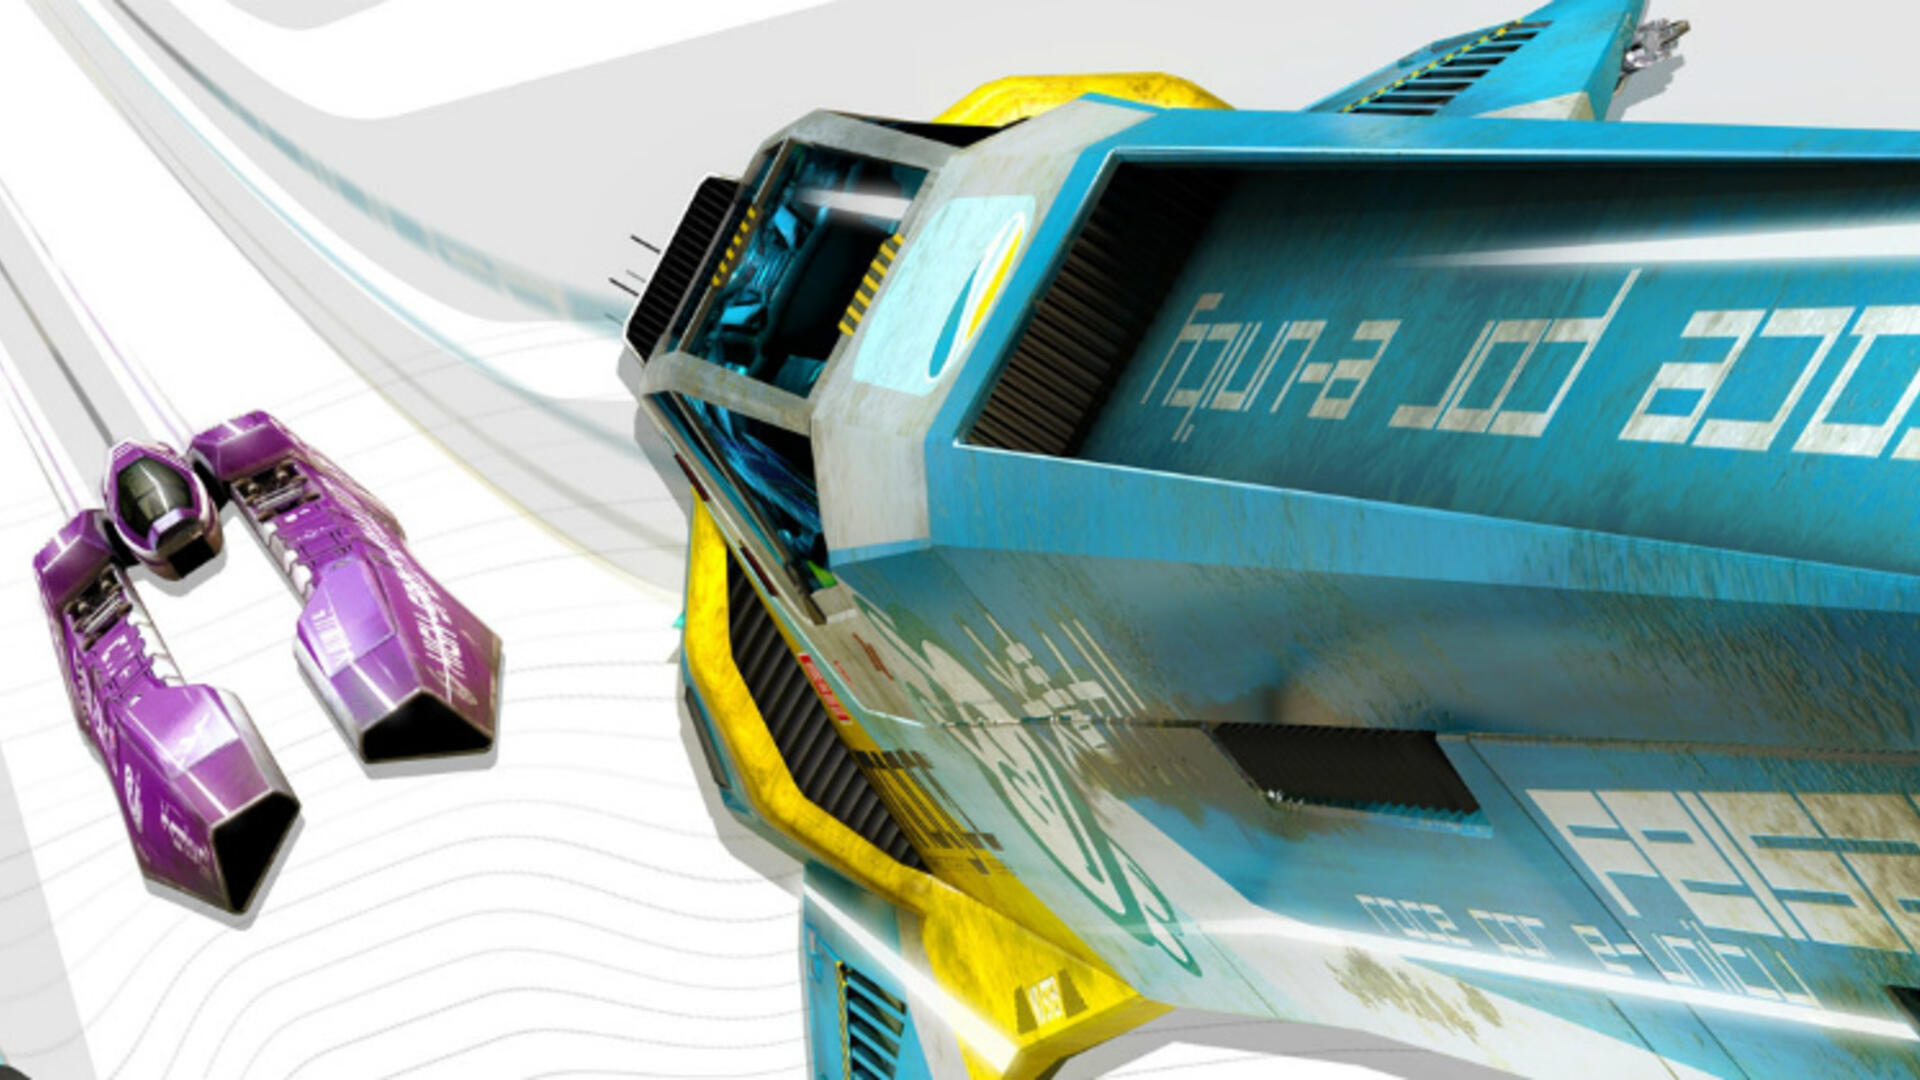 Wipeout Gets a Remaster Collection for PS4, Not a Sequel